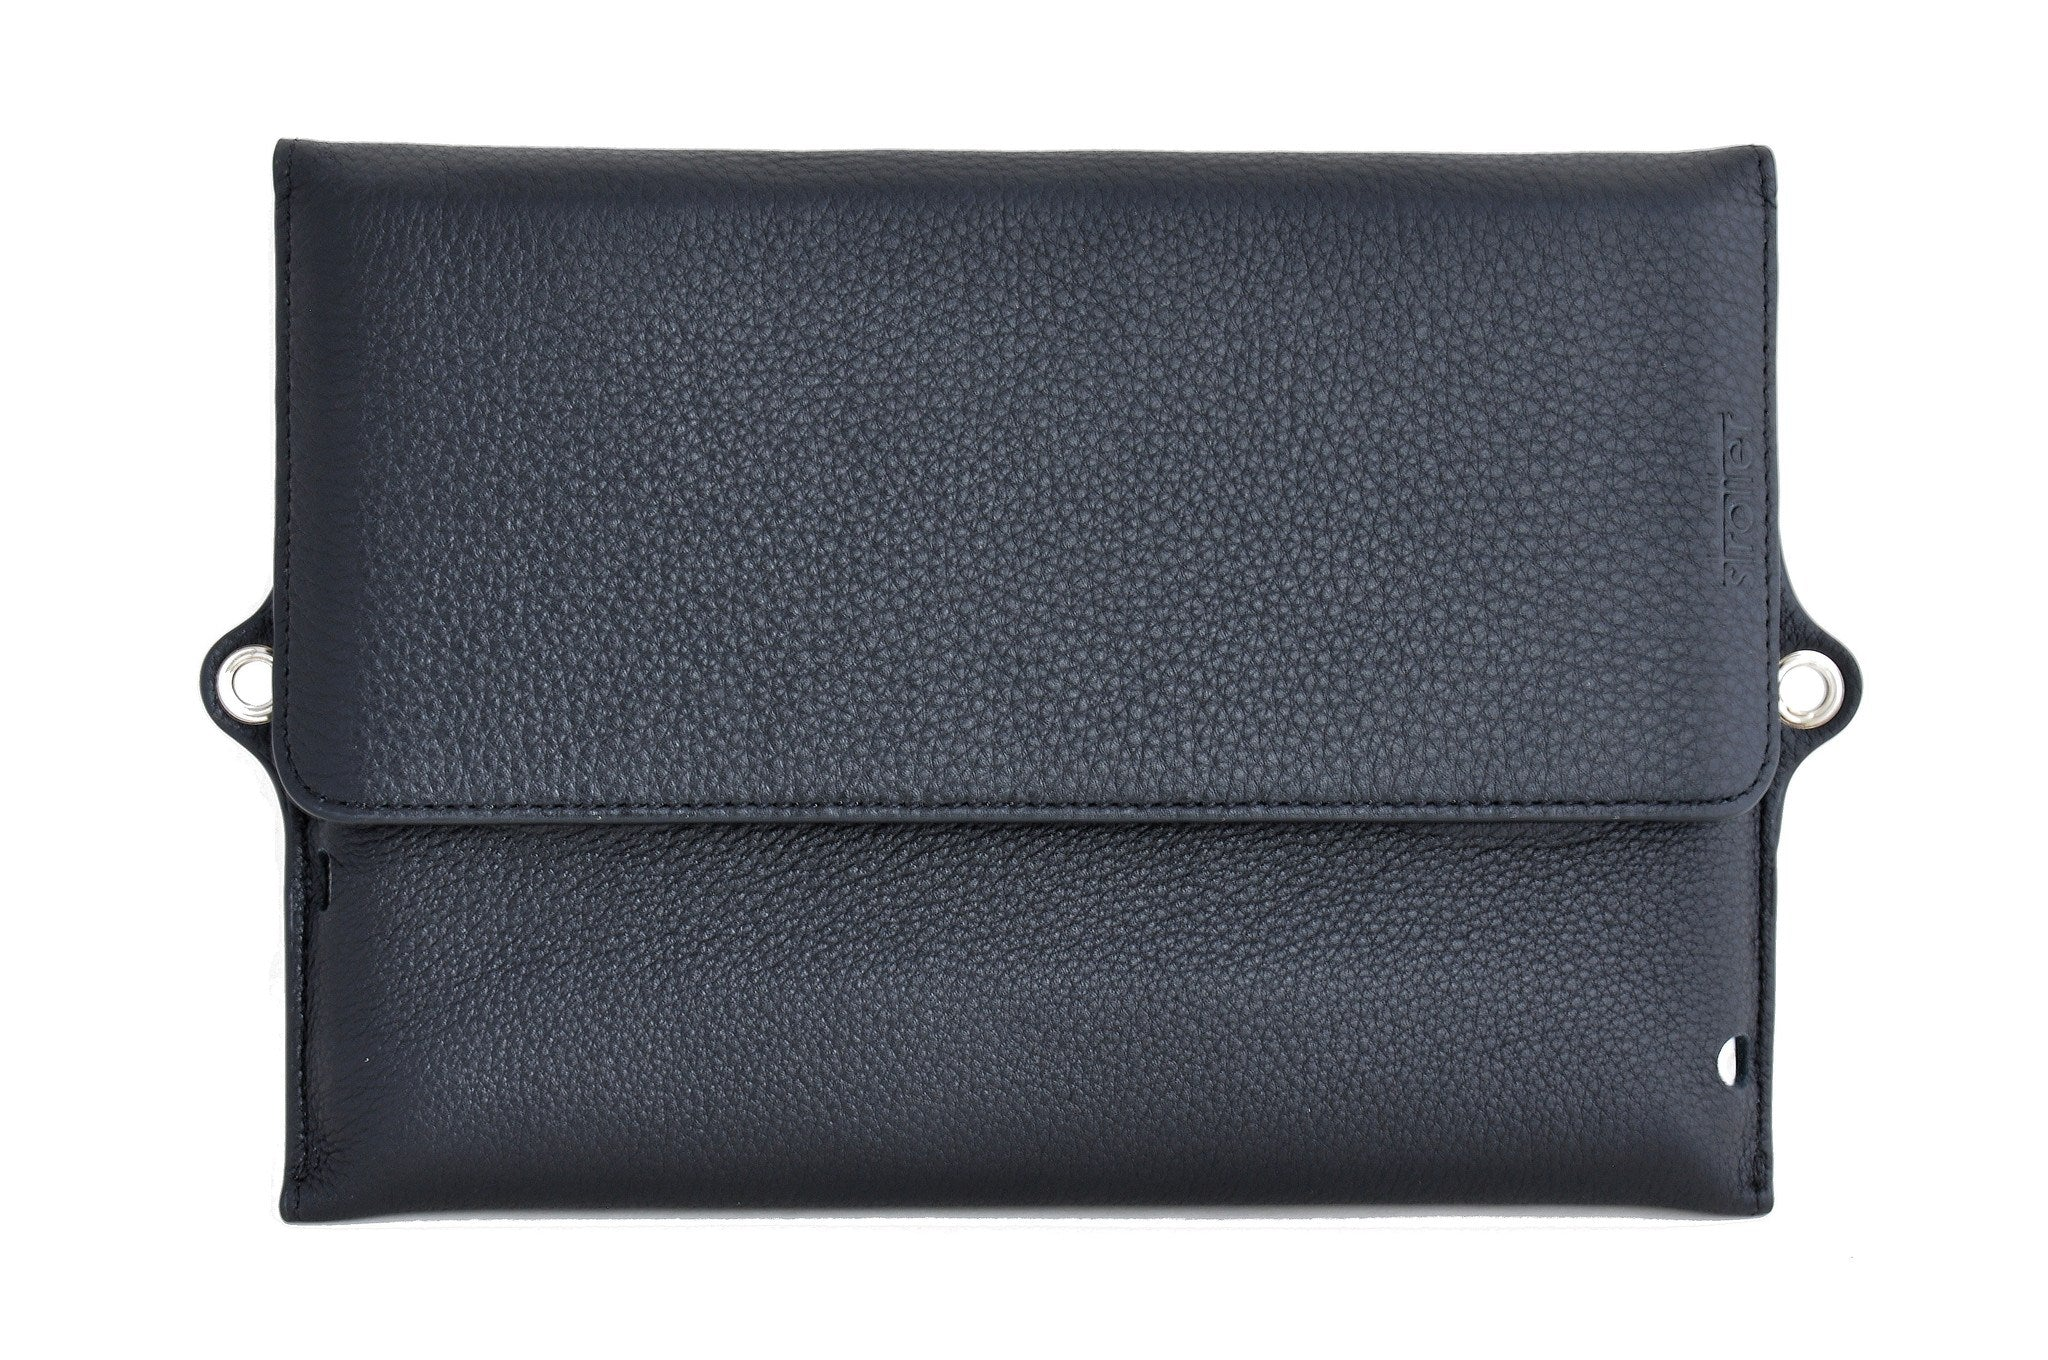 Case for iPad Mini - Across GL (genuine leather) in black.